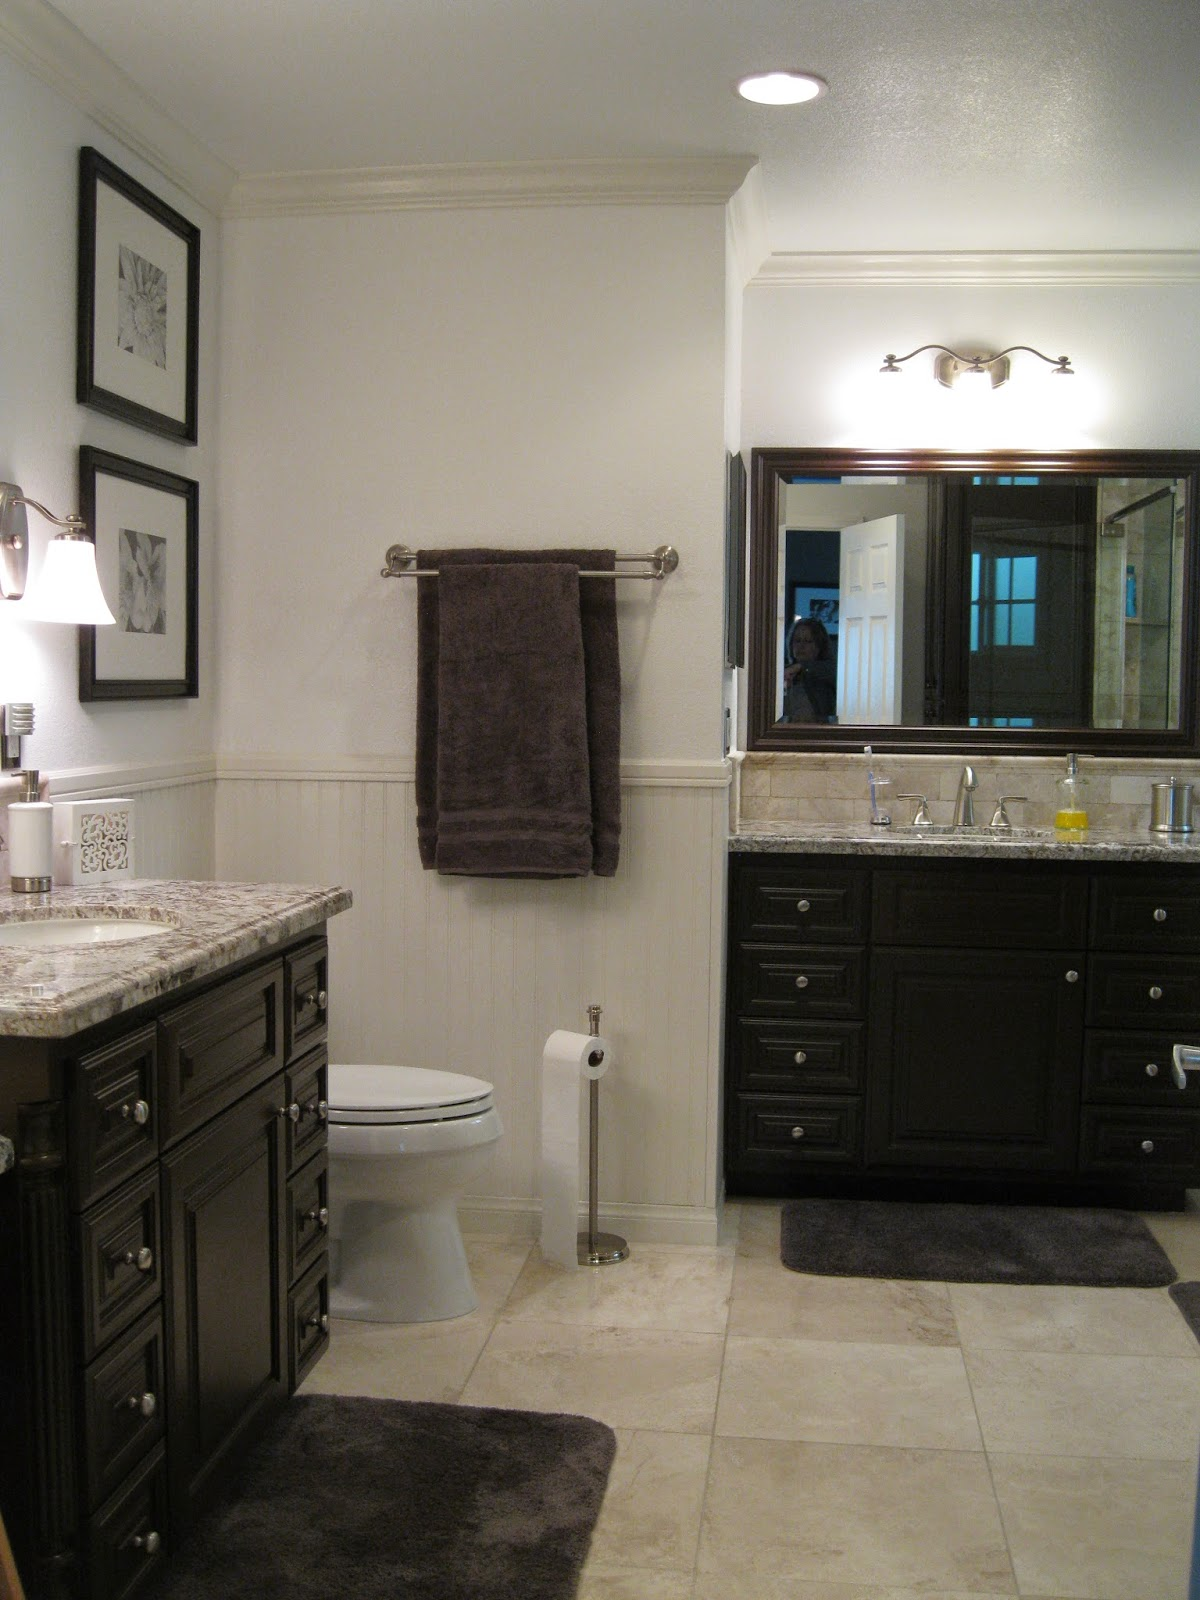 c.b.i.d. home decor and design: beyond the ordinary - bathrooms